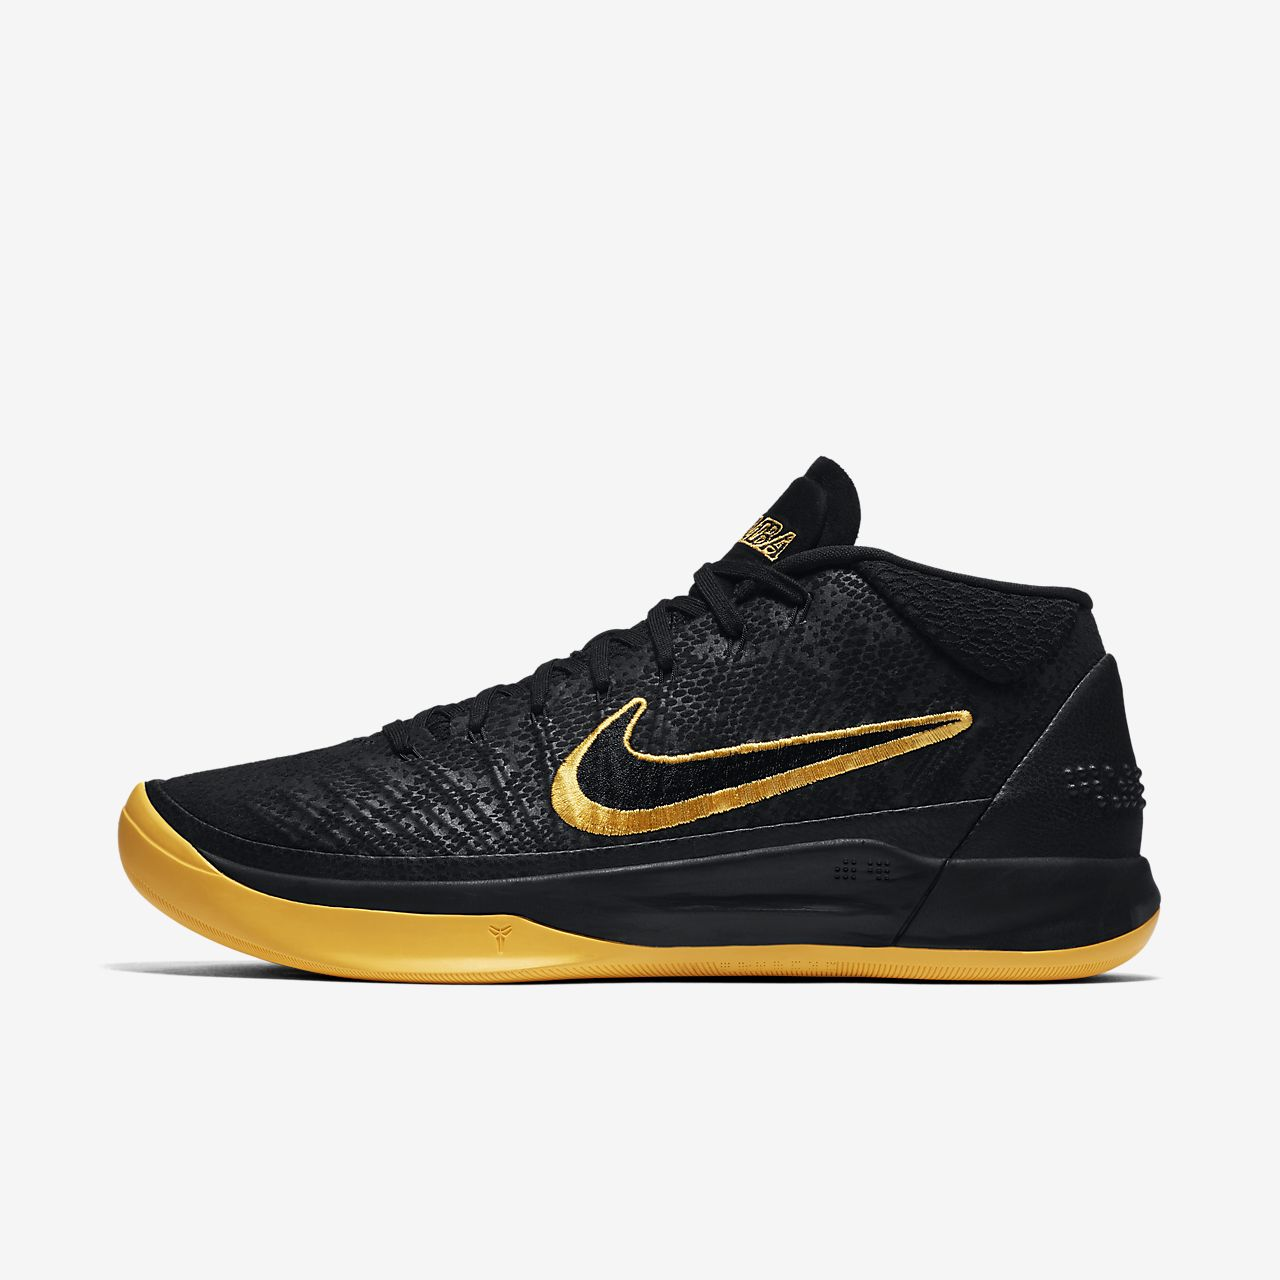 ... Nike Kobe A.D. Black Mamba Men's Basketball Shoe